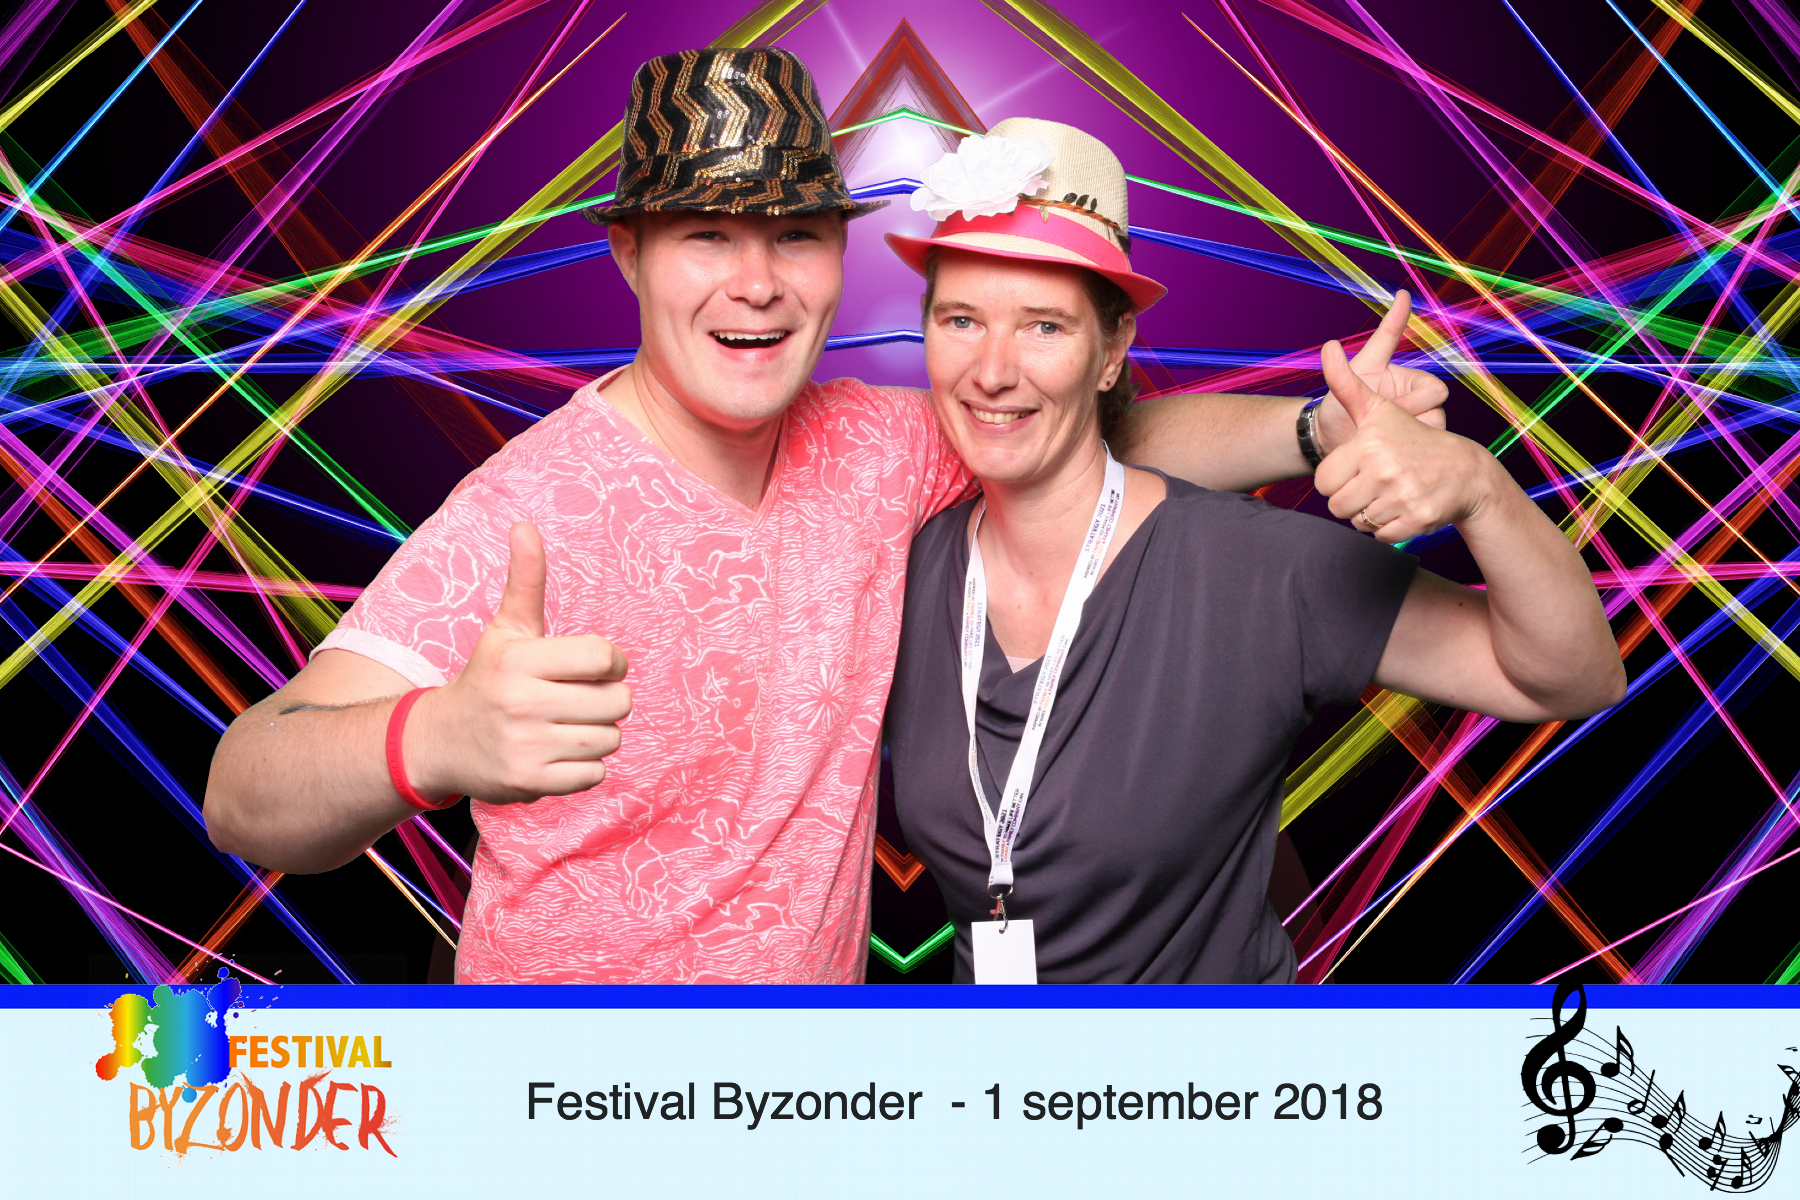 Festival event photo booth